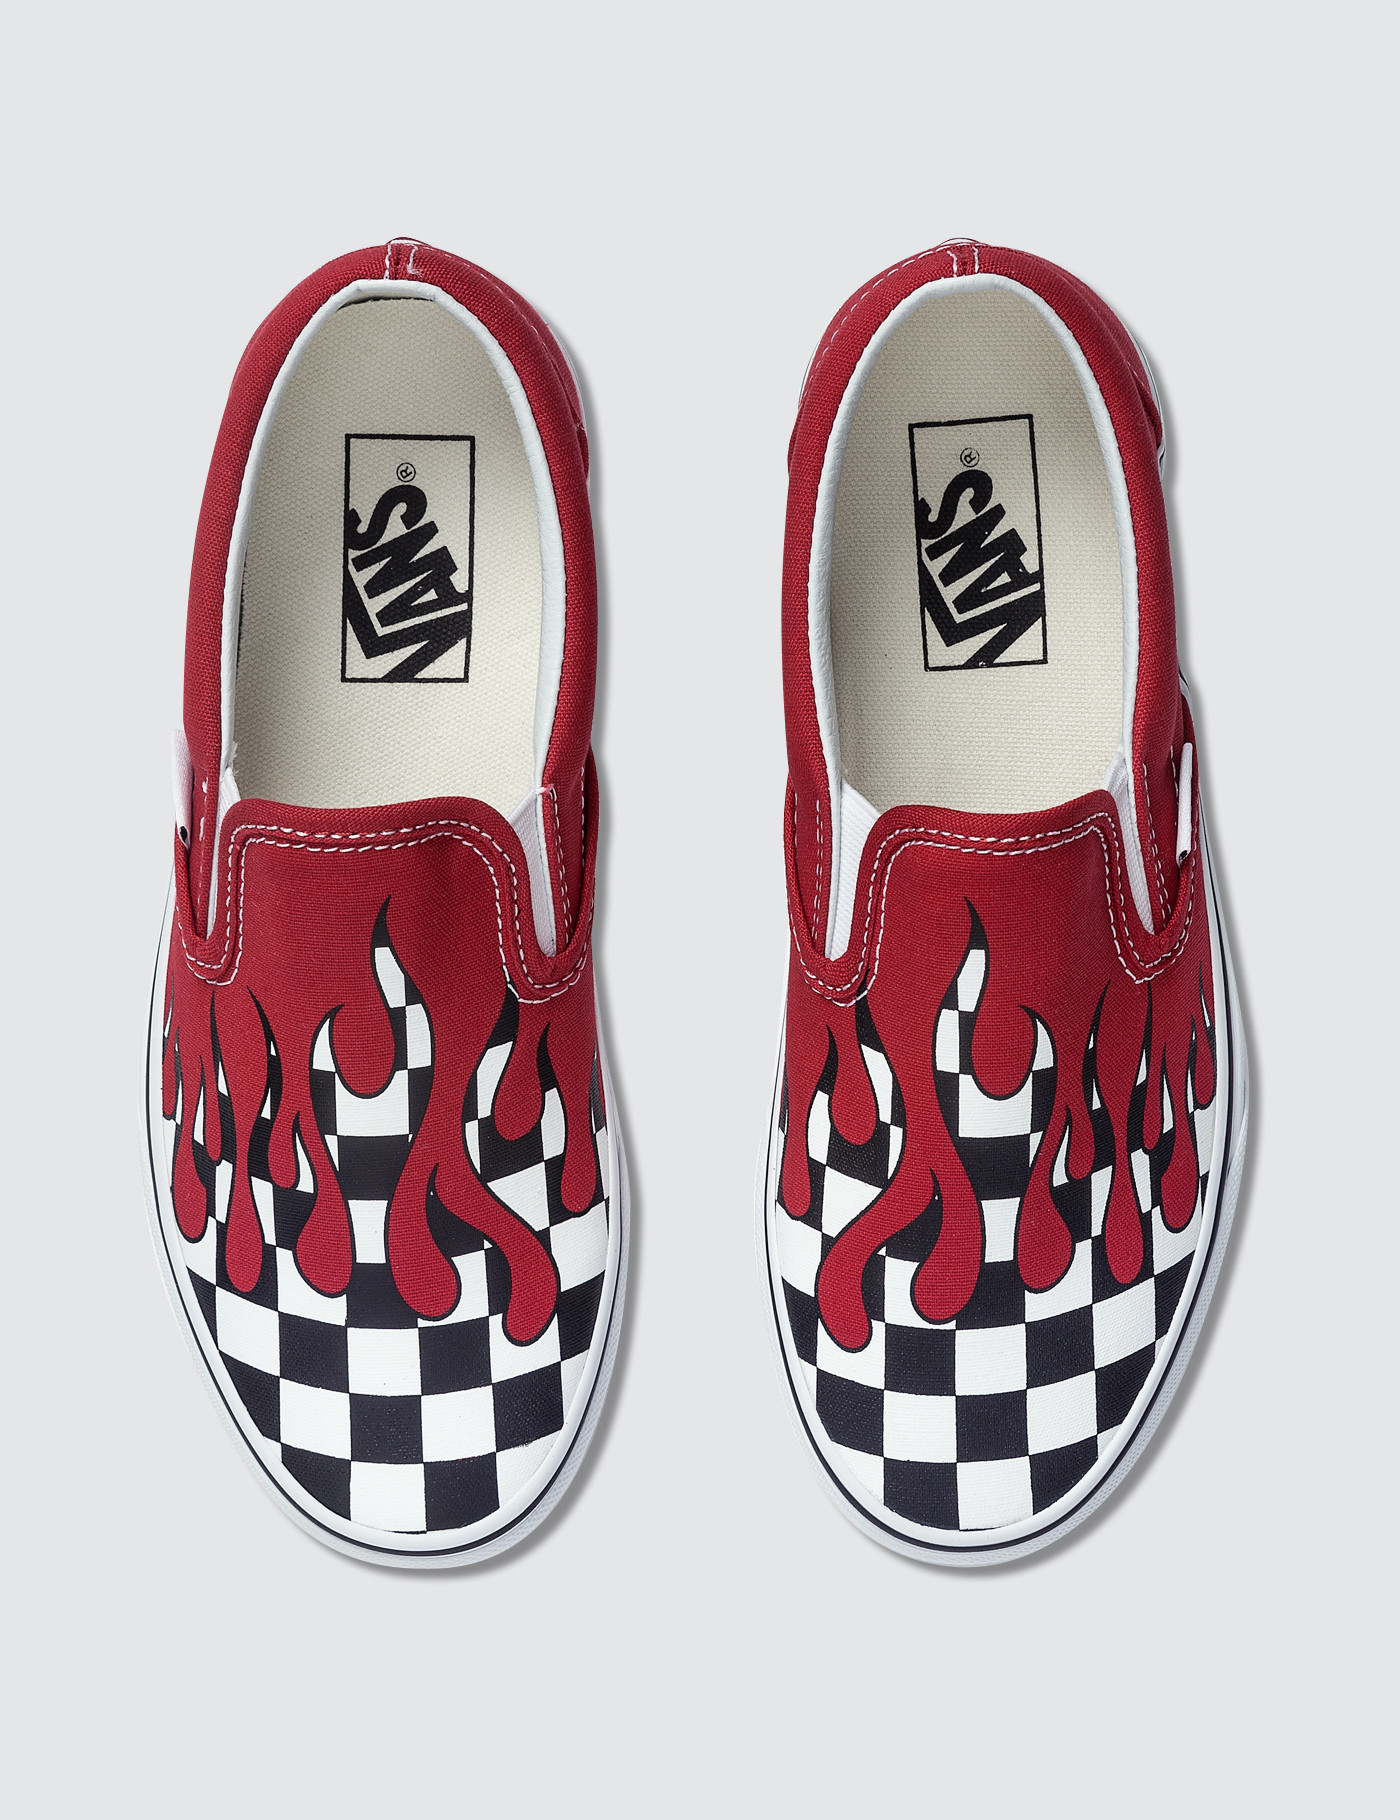 b9b7270fc69 Buy Original Vans Checker Flame Classic Slip-on at Indonesia ...